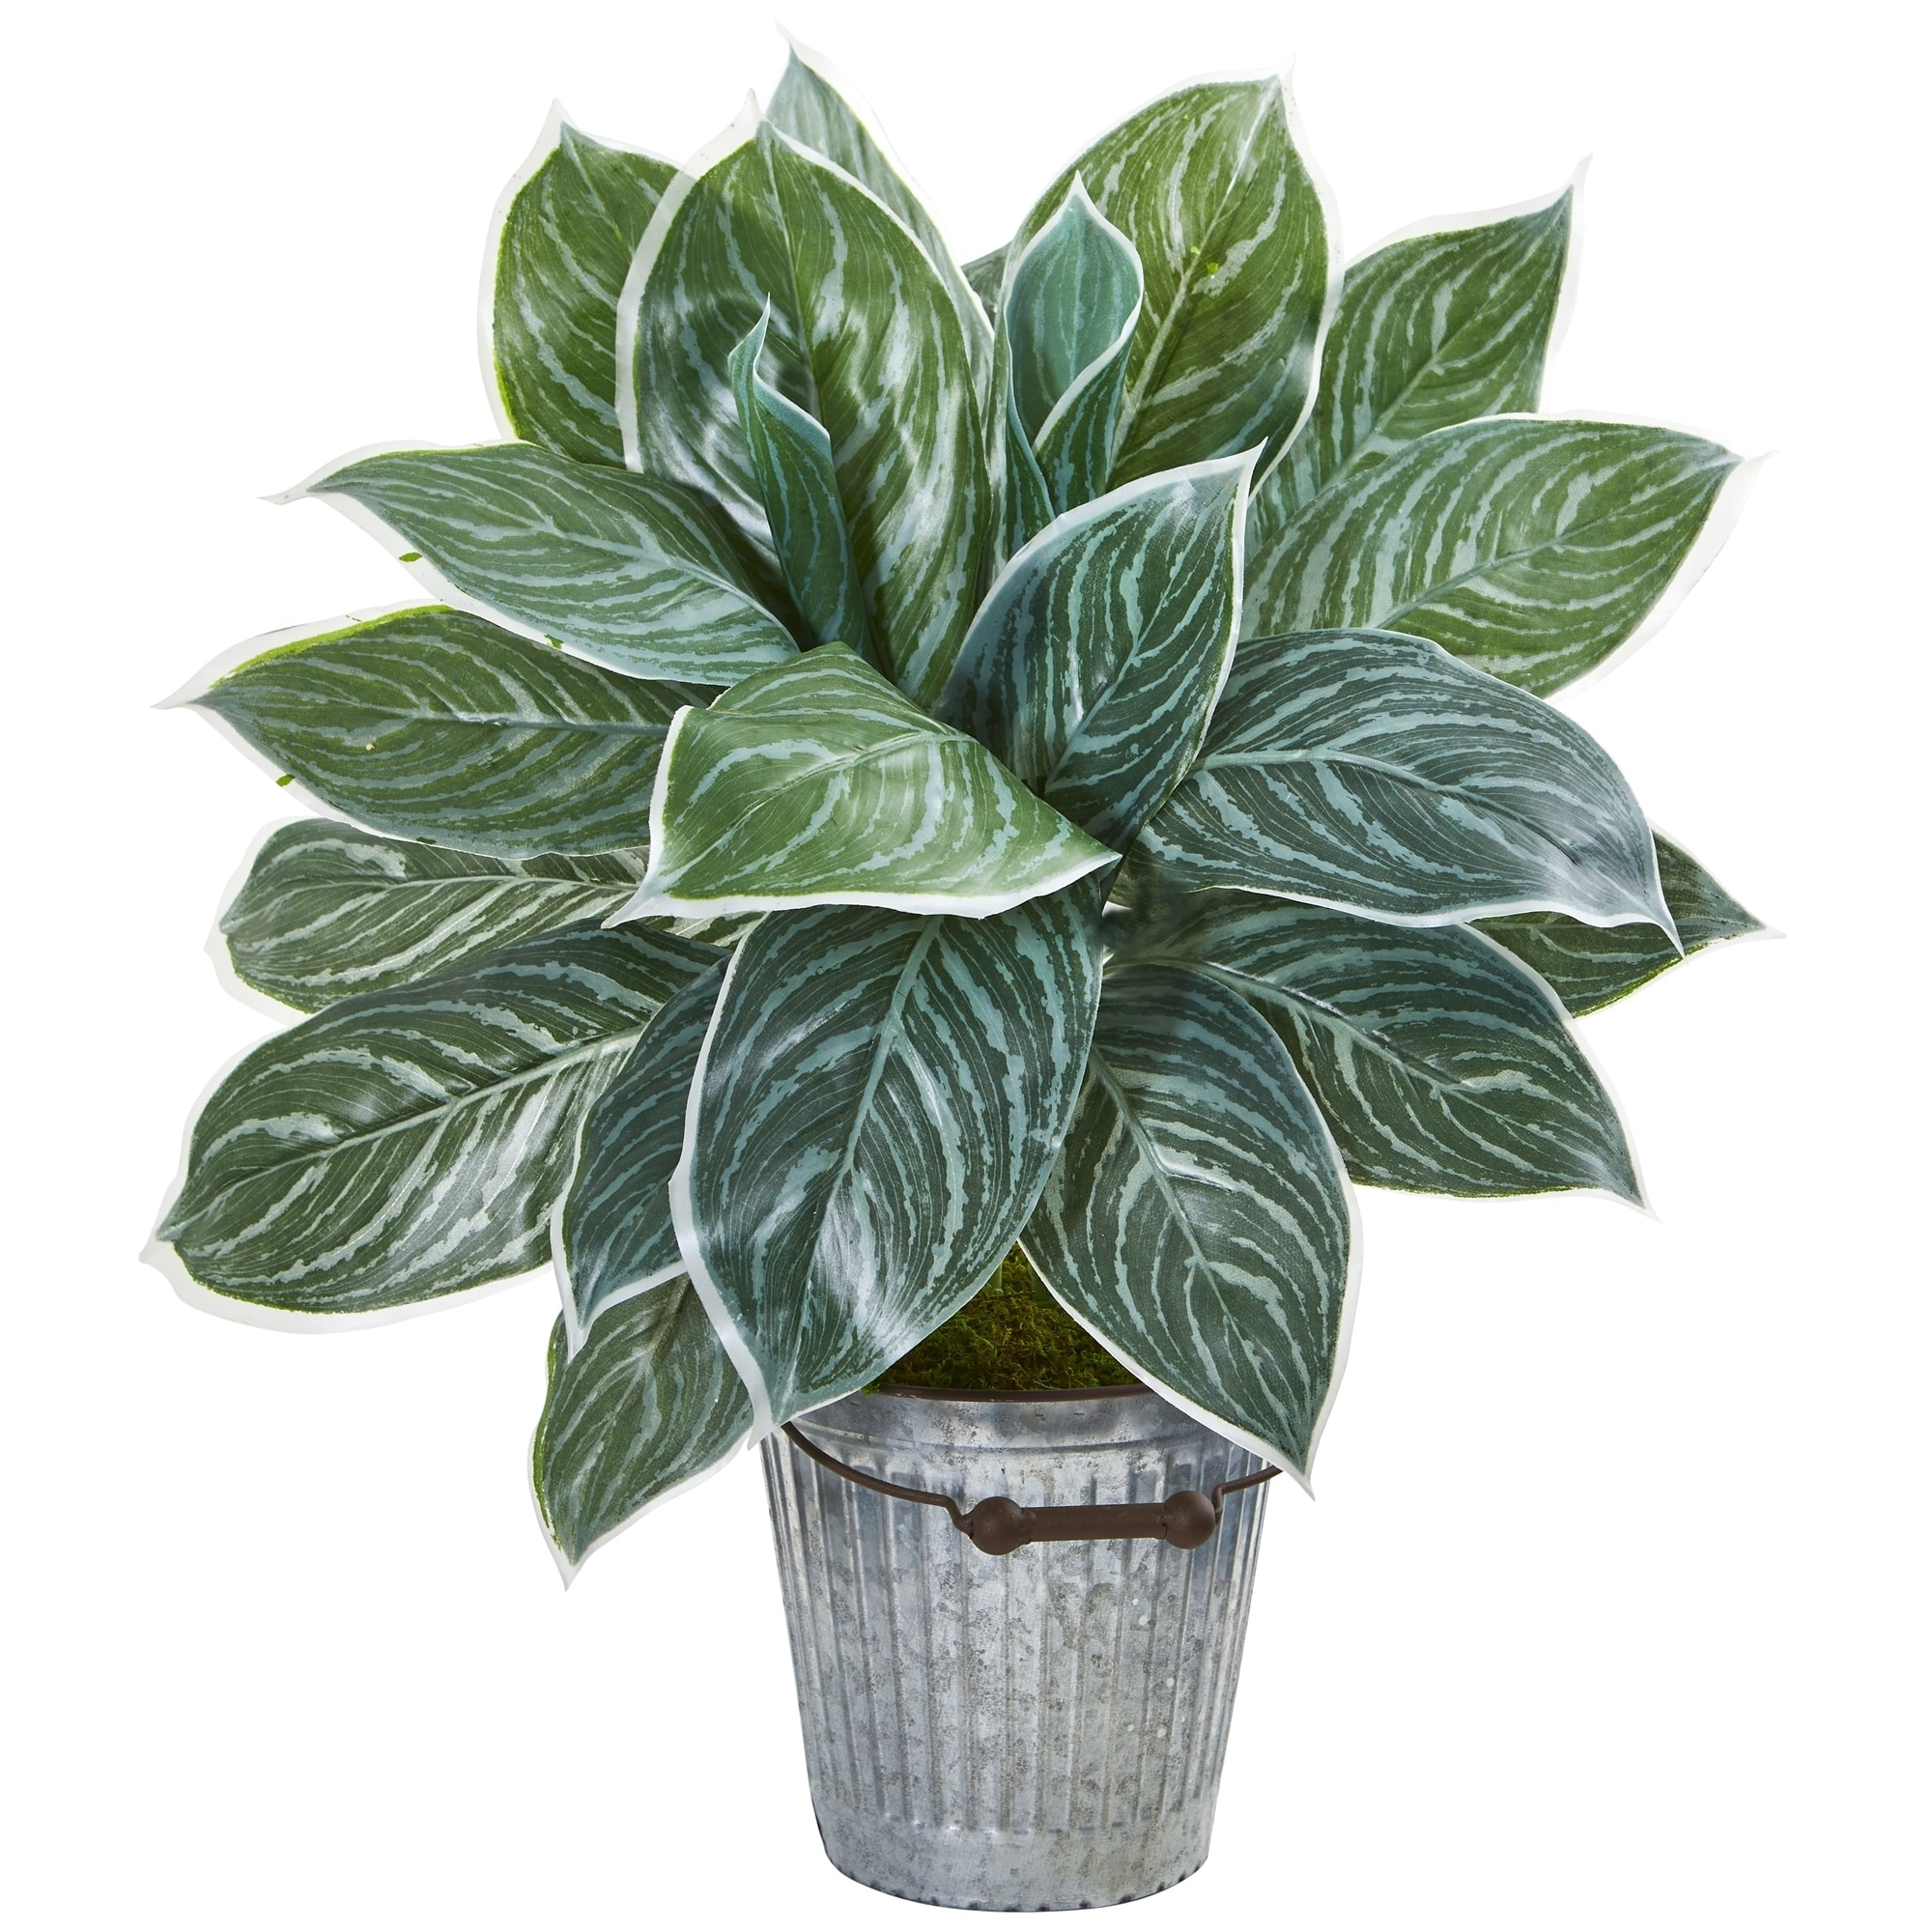 24 Silver Aglonema Artificial Plant in Decorative Bucket (Real Touch)